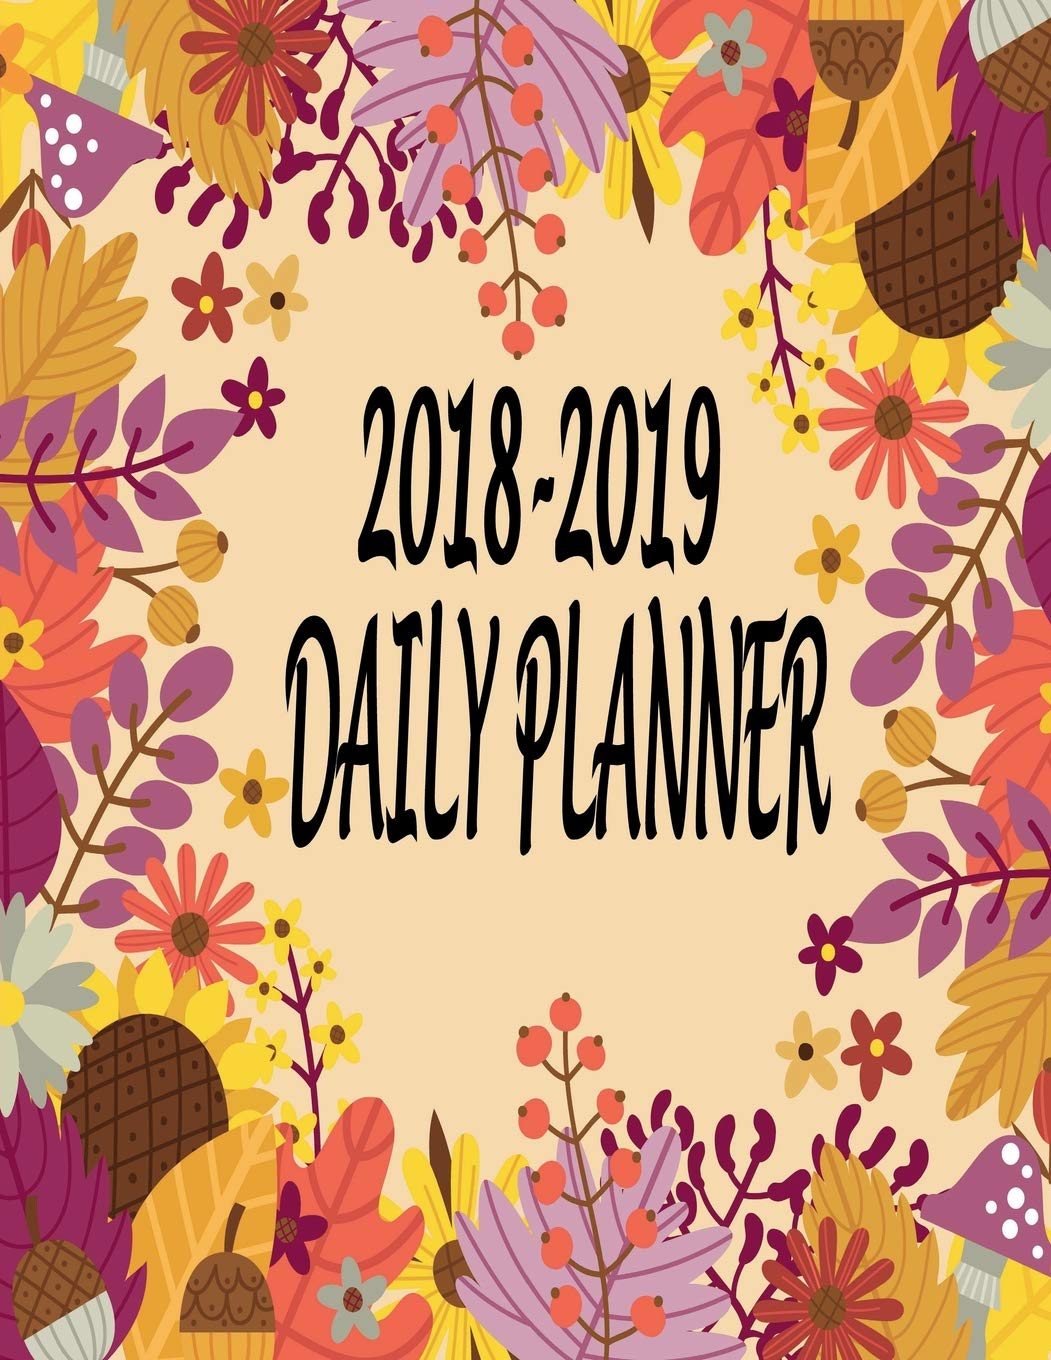 2018 - 2019 Daily Planner: 2018 - 2019 Daily Planner Weekly And Monthly Academic Planner for Activity Schedule Organizer and Inspirational Quotes with Journal Notebook (August 2018 - December 2019) pdf epub